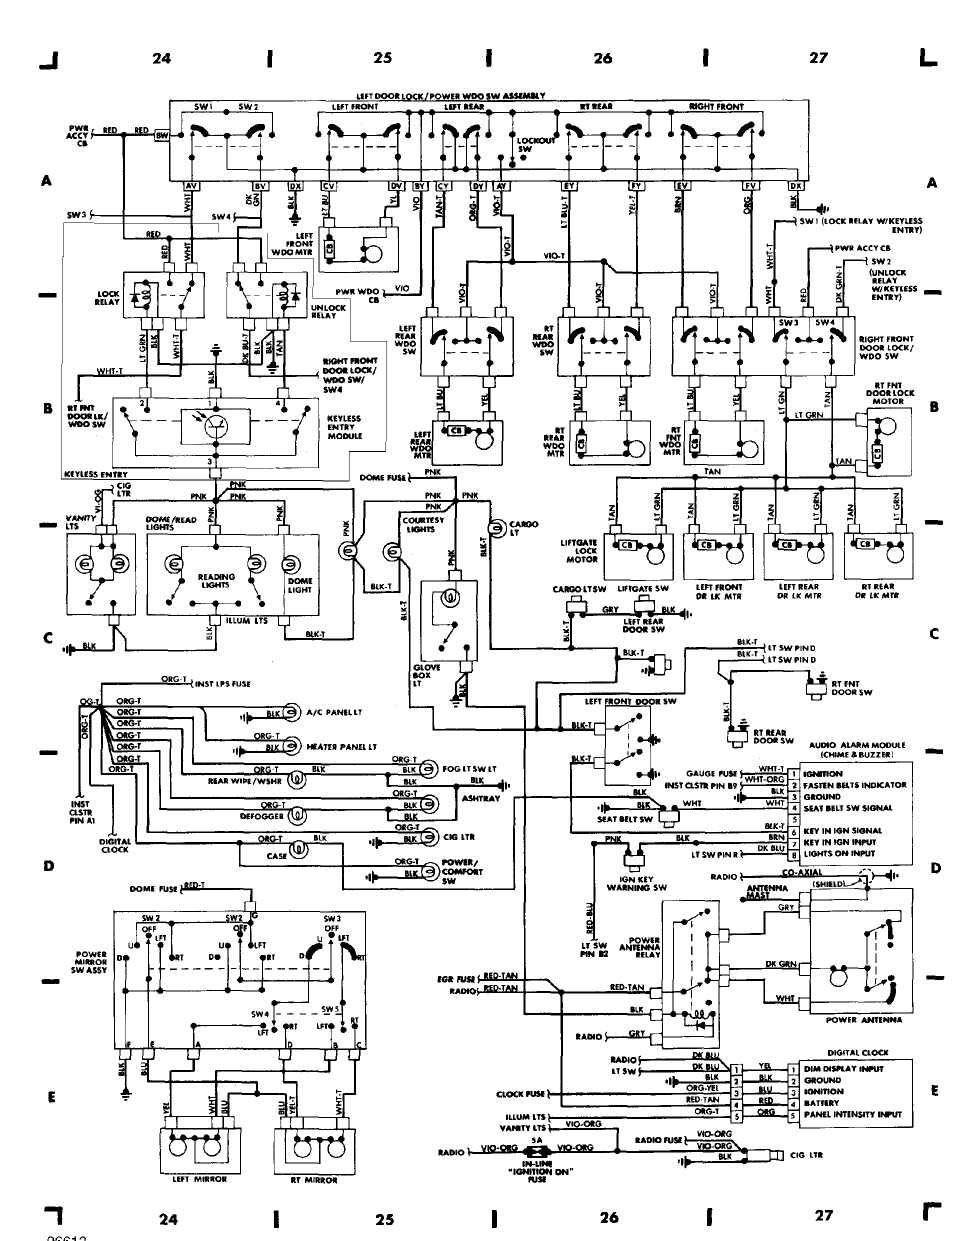 WIRING DIAGRAMS :: 1984 - 1991 :: Jeep Cherokee (XJ) :: Jeep ... on 83 jeep starter relay diagram, jeep wrangler solenoid location, jeep commander starter wiring diagram, jeep yj starter, jeep yj engine diagram fan switch, ford starter solenoid diagram, jeep yj headlight relay location, 1997 jeep wrangler starter diagram, 2006 jeep wrangler starter diagram, jeep heater core diagram, jeep starter terminal connection diagram, 2012 jeep wrangler starter location diagram, 4-wire solenoid diagram, jeep wrangler starter relay, auto meter fuel gauge wiring diagram,